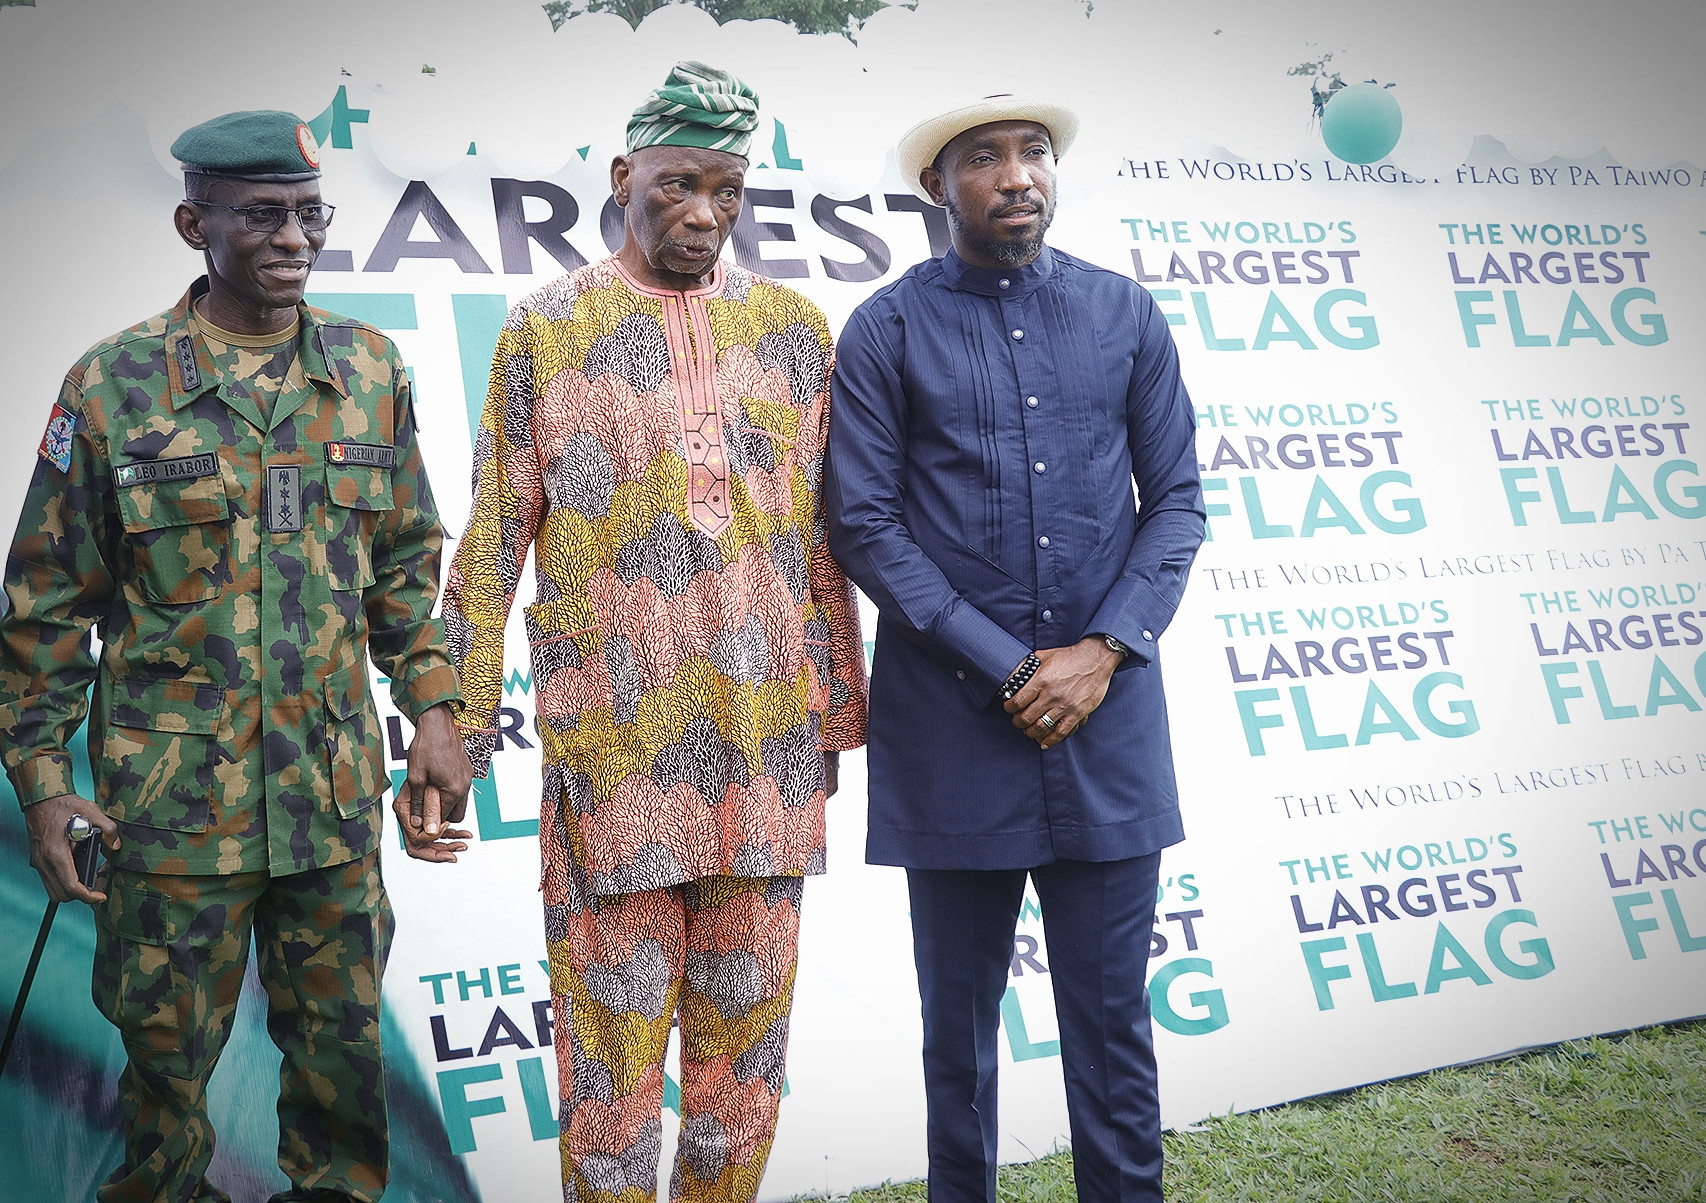 At the event were members of Pa. Akinkunmi's family, the Chief of Defence Staff Gen. Lucky Irabor, Timi Dakolo and media representatives